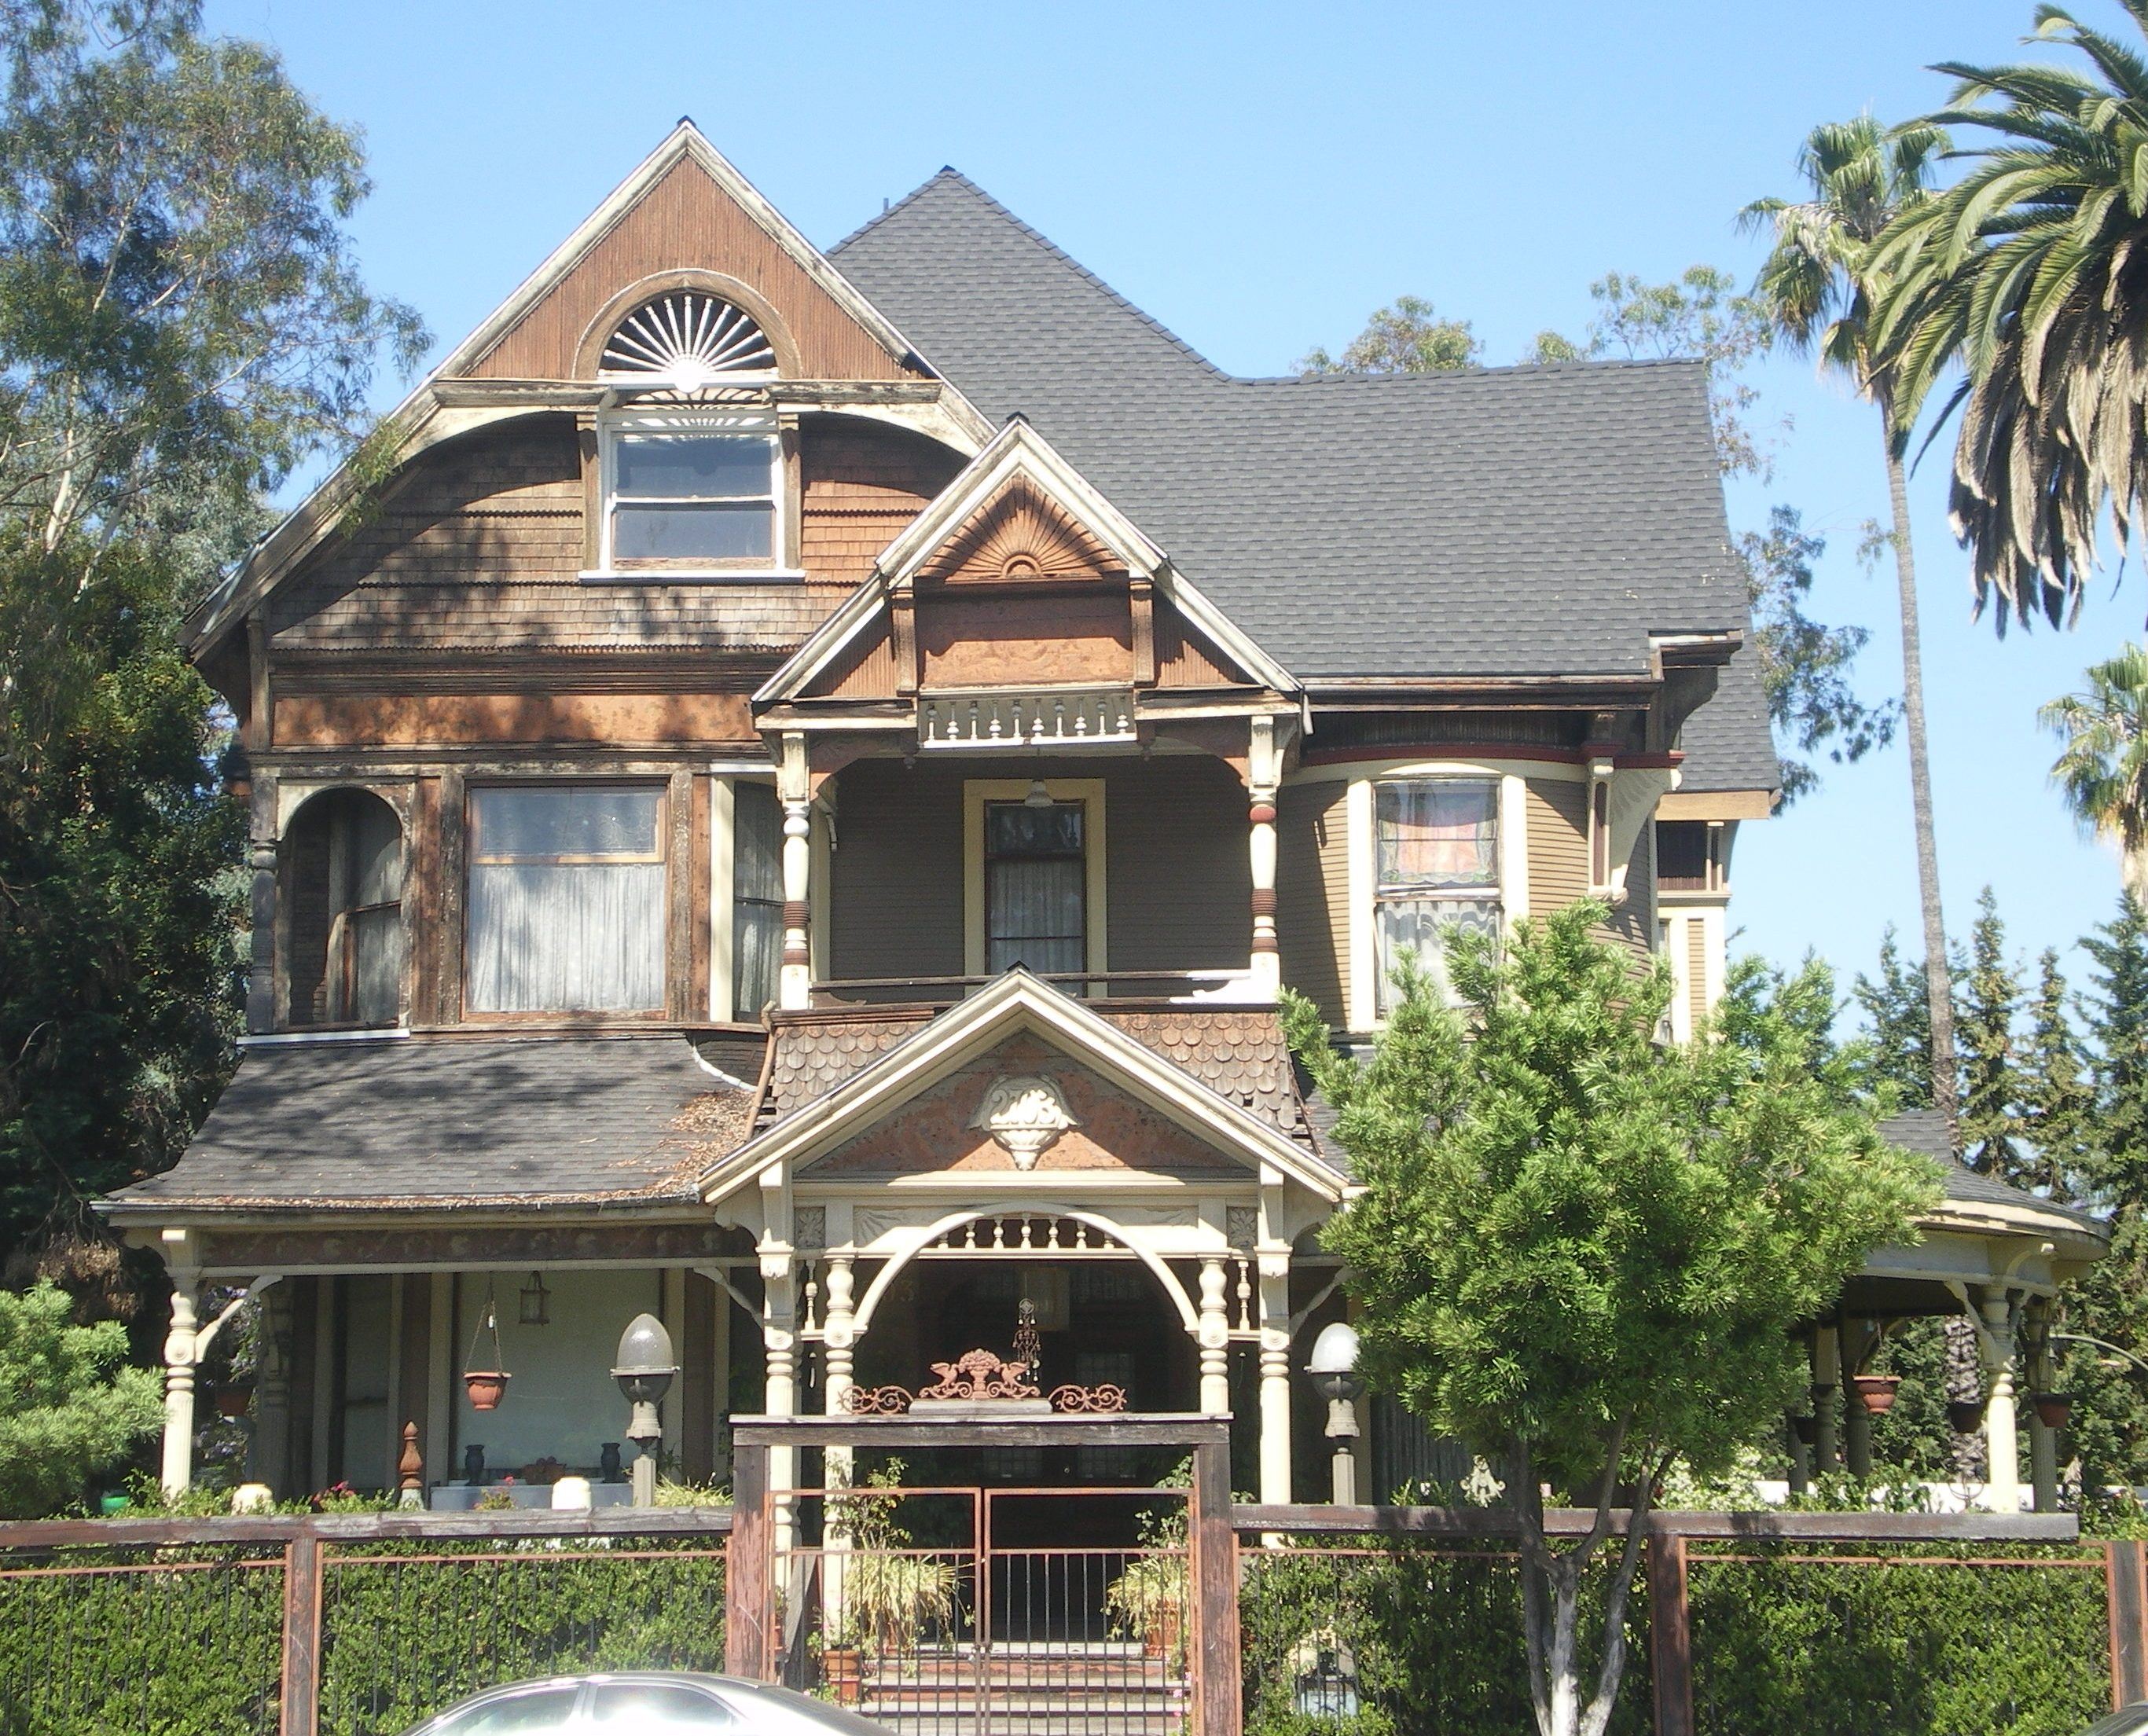 File:House at 2703 S. Hoover, Los Angeles.JPG